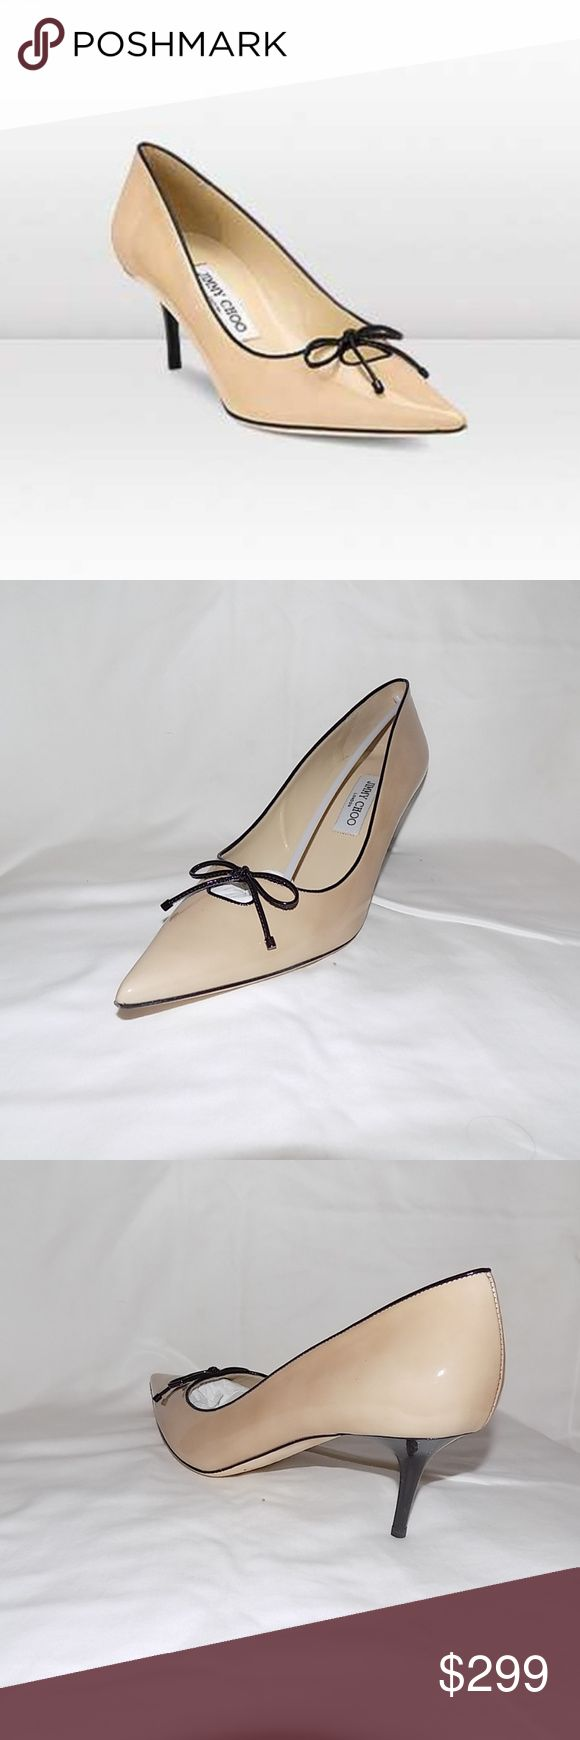 Jimmy Choo Nude Owlet Black In Box Pumps sz42 Patent Leather Pointy Toe Pumps  Jimmy Choo Shoes Colour: Black/Nude  These delicately cut out shoes with feminine bow detail make the perfect day shoes.  This product is the result of extensive research, resulting in fine details synonymous with high quality luxury. New in Box sz 42 Jummy Choo Shoes Heels